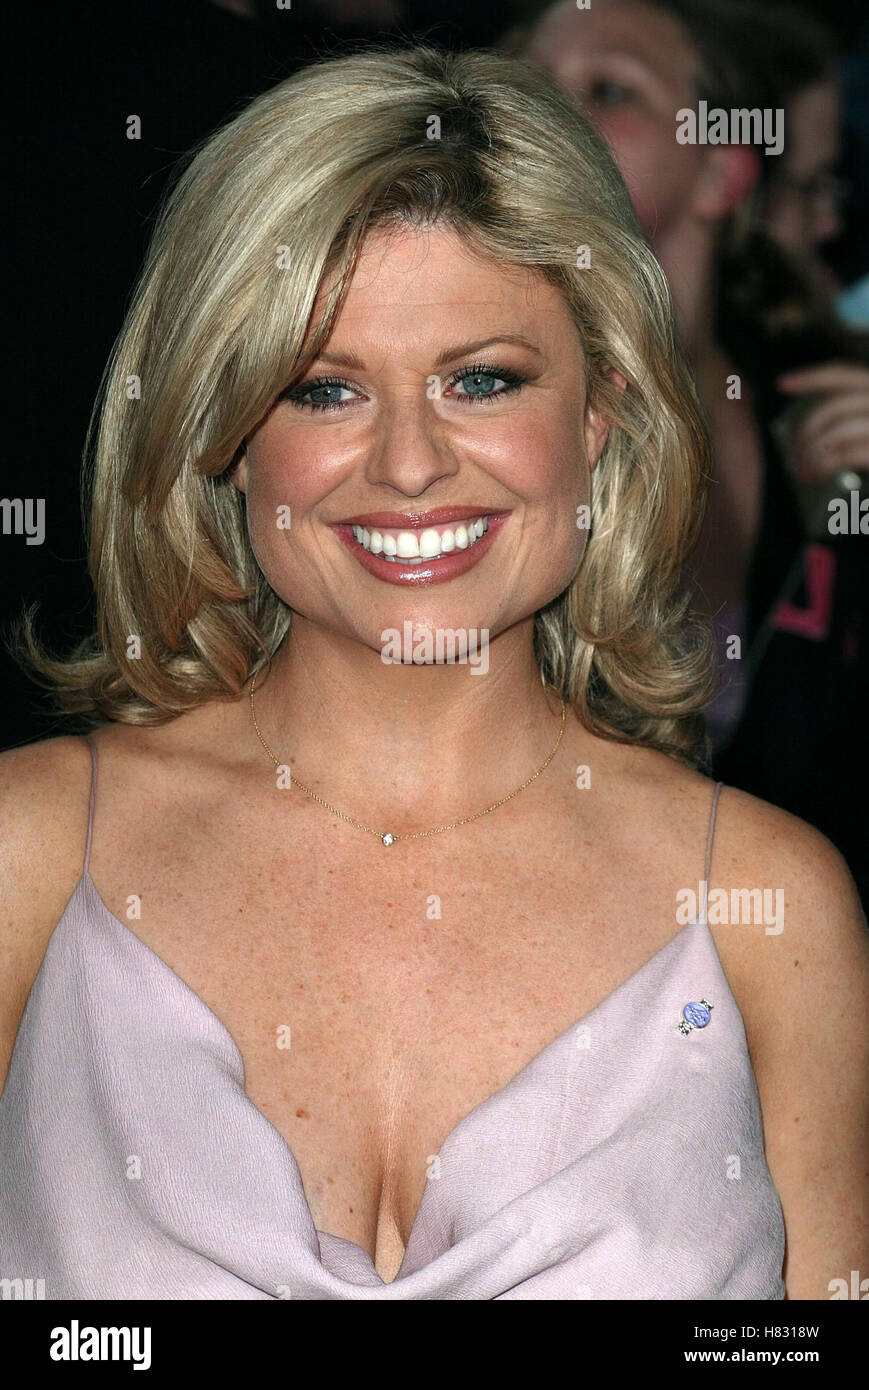 Cleavage Emily Symons nude photos 2019